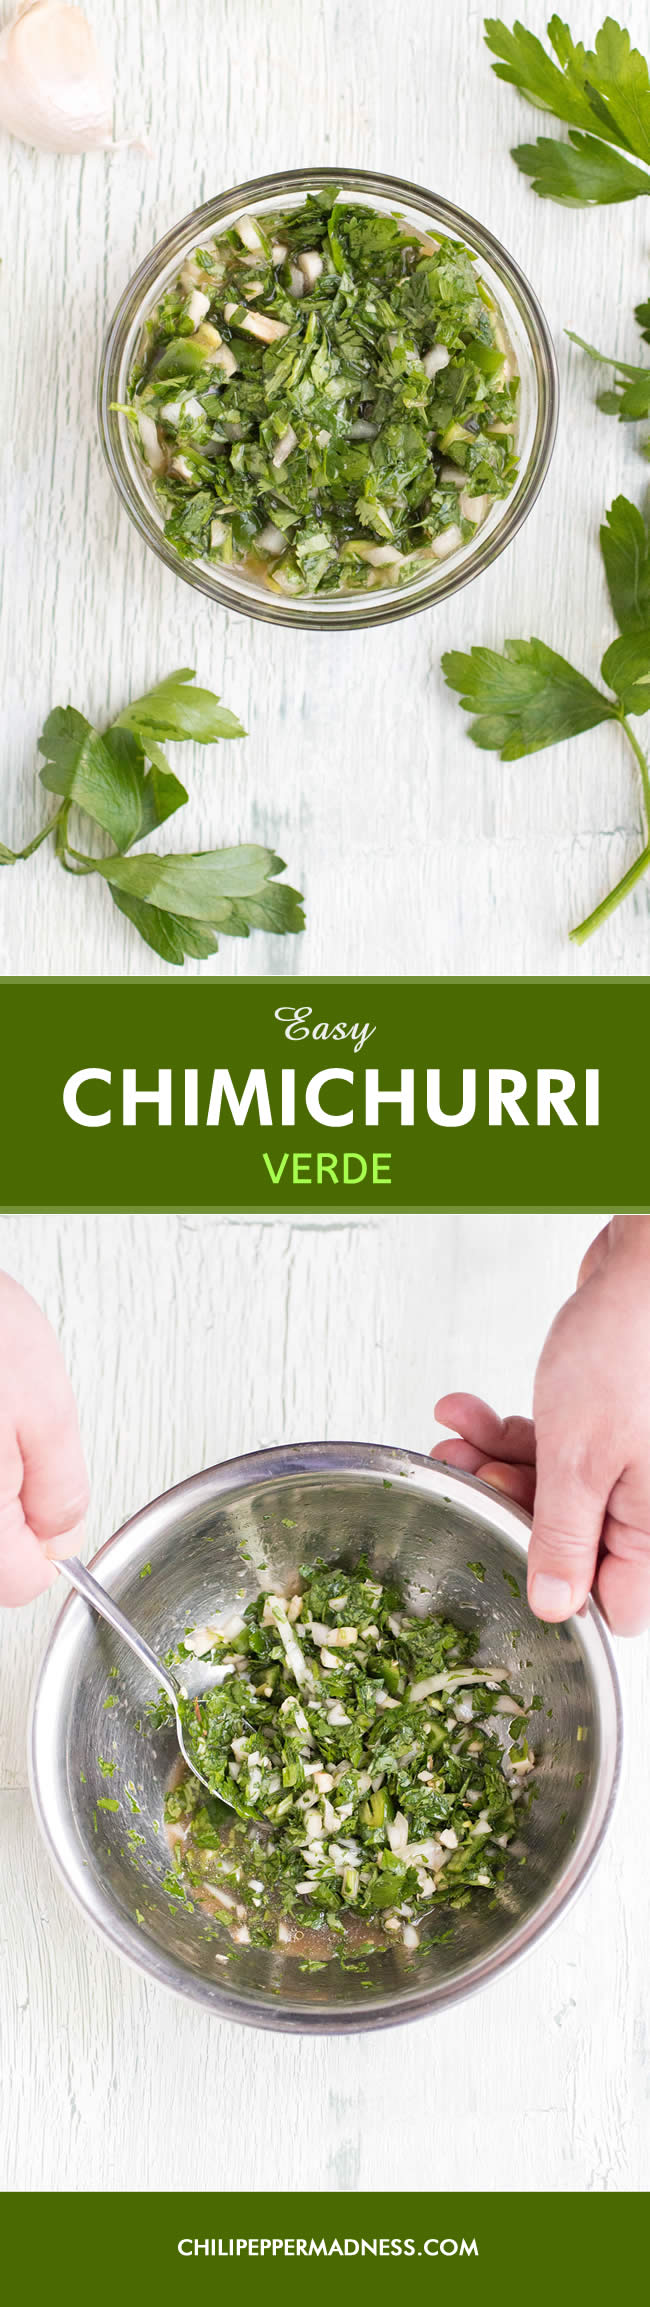 Easy Chimichurri Verde (Green Chimichurri) - Recipe